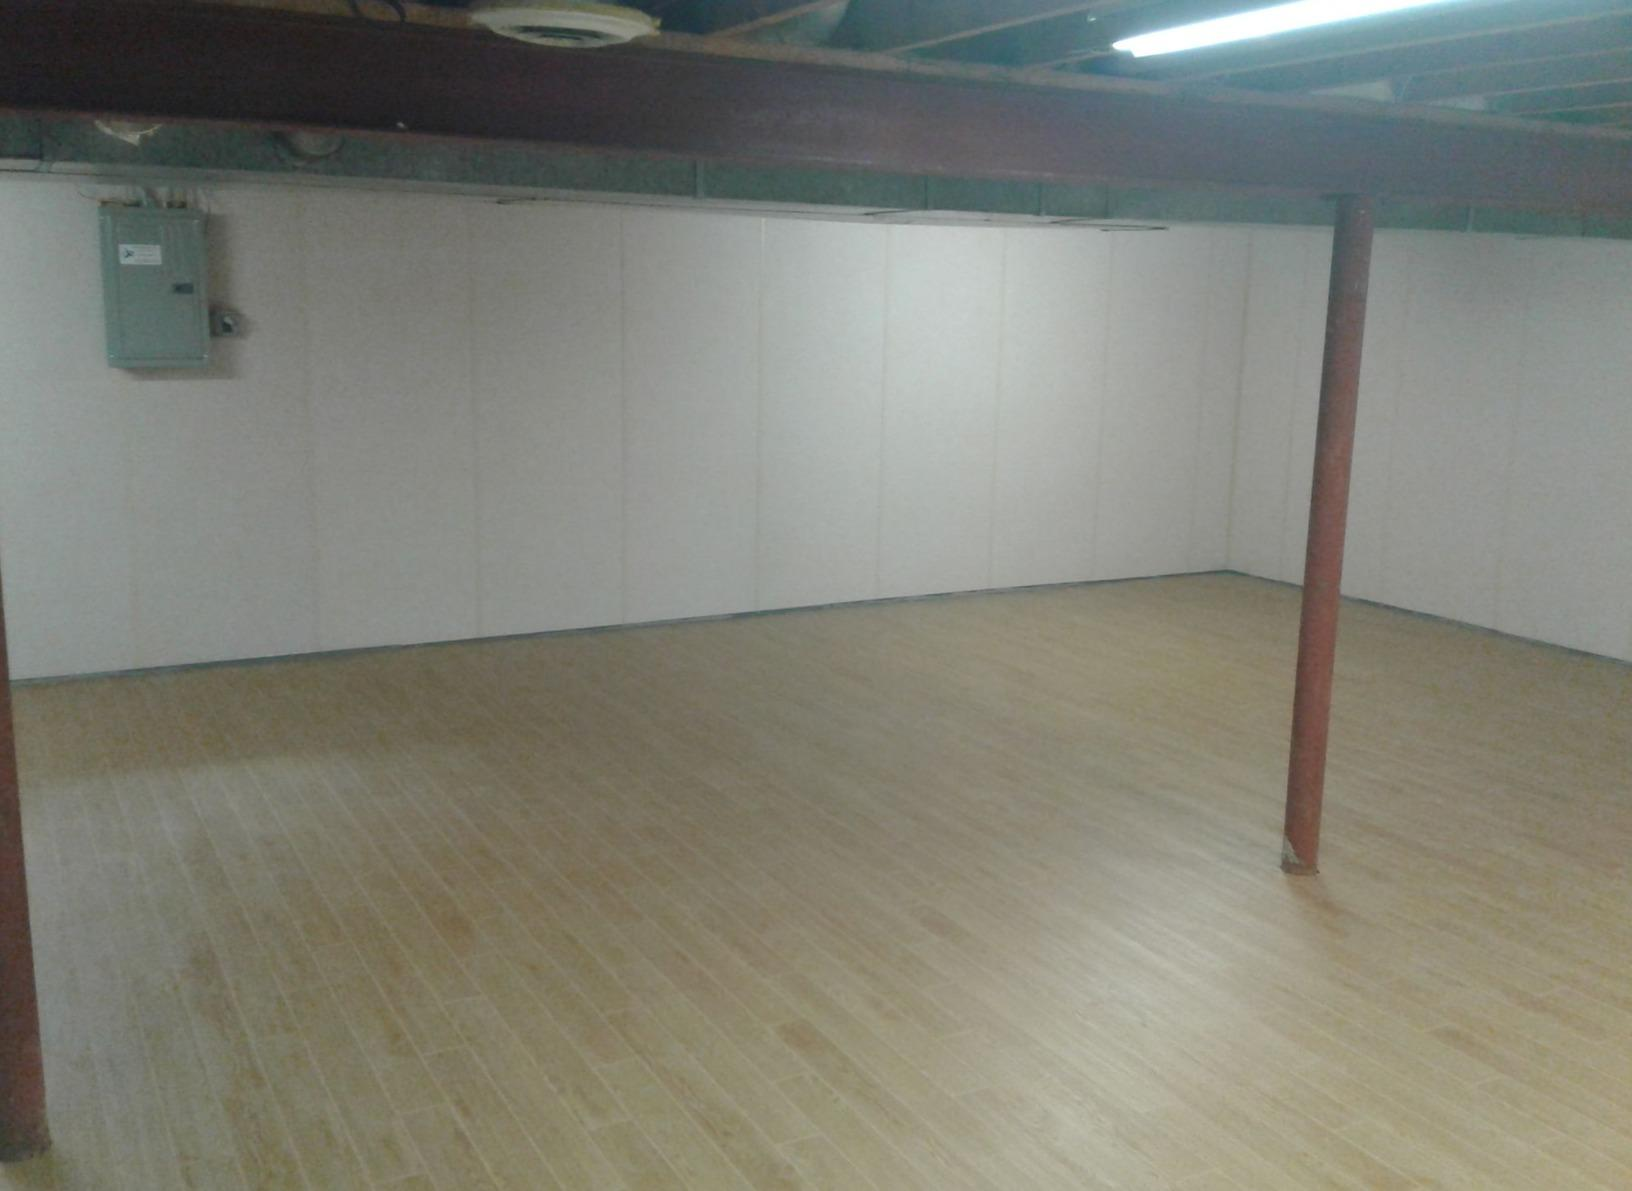 Basement Waterproofing and Flooring in Ambler, PA - After Photo